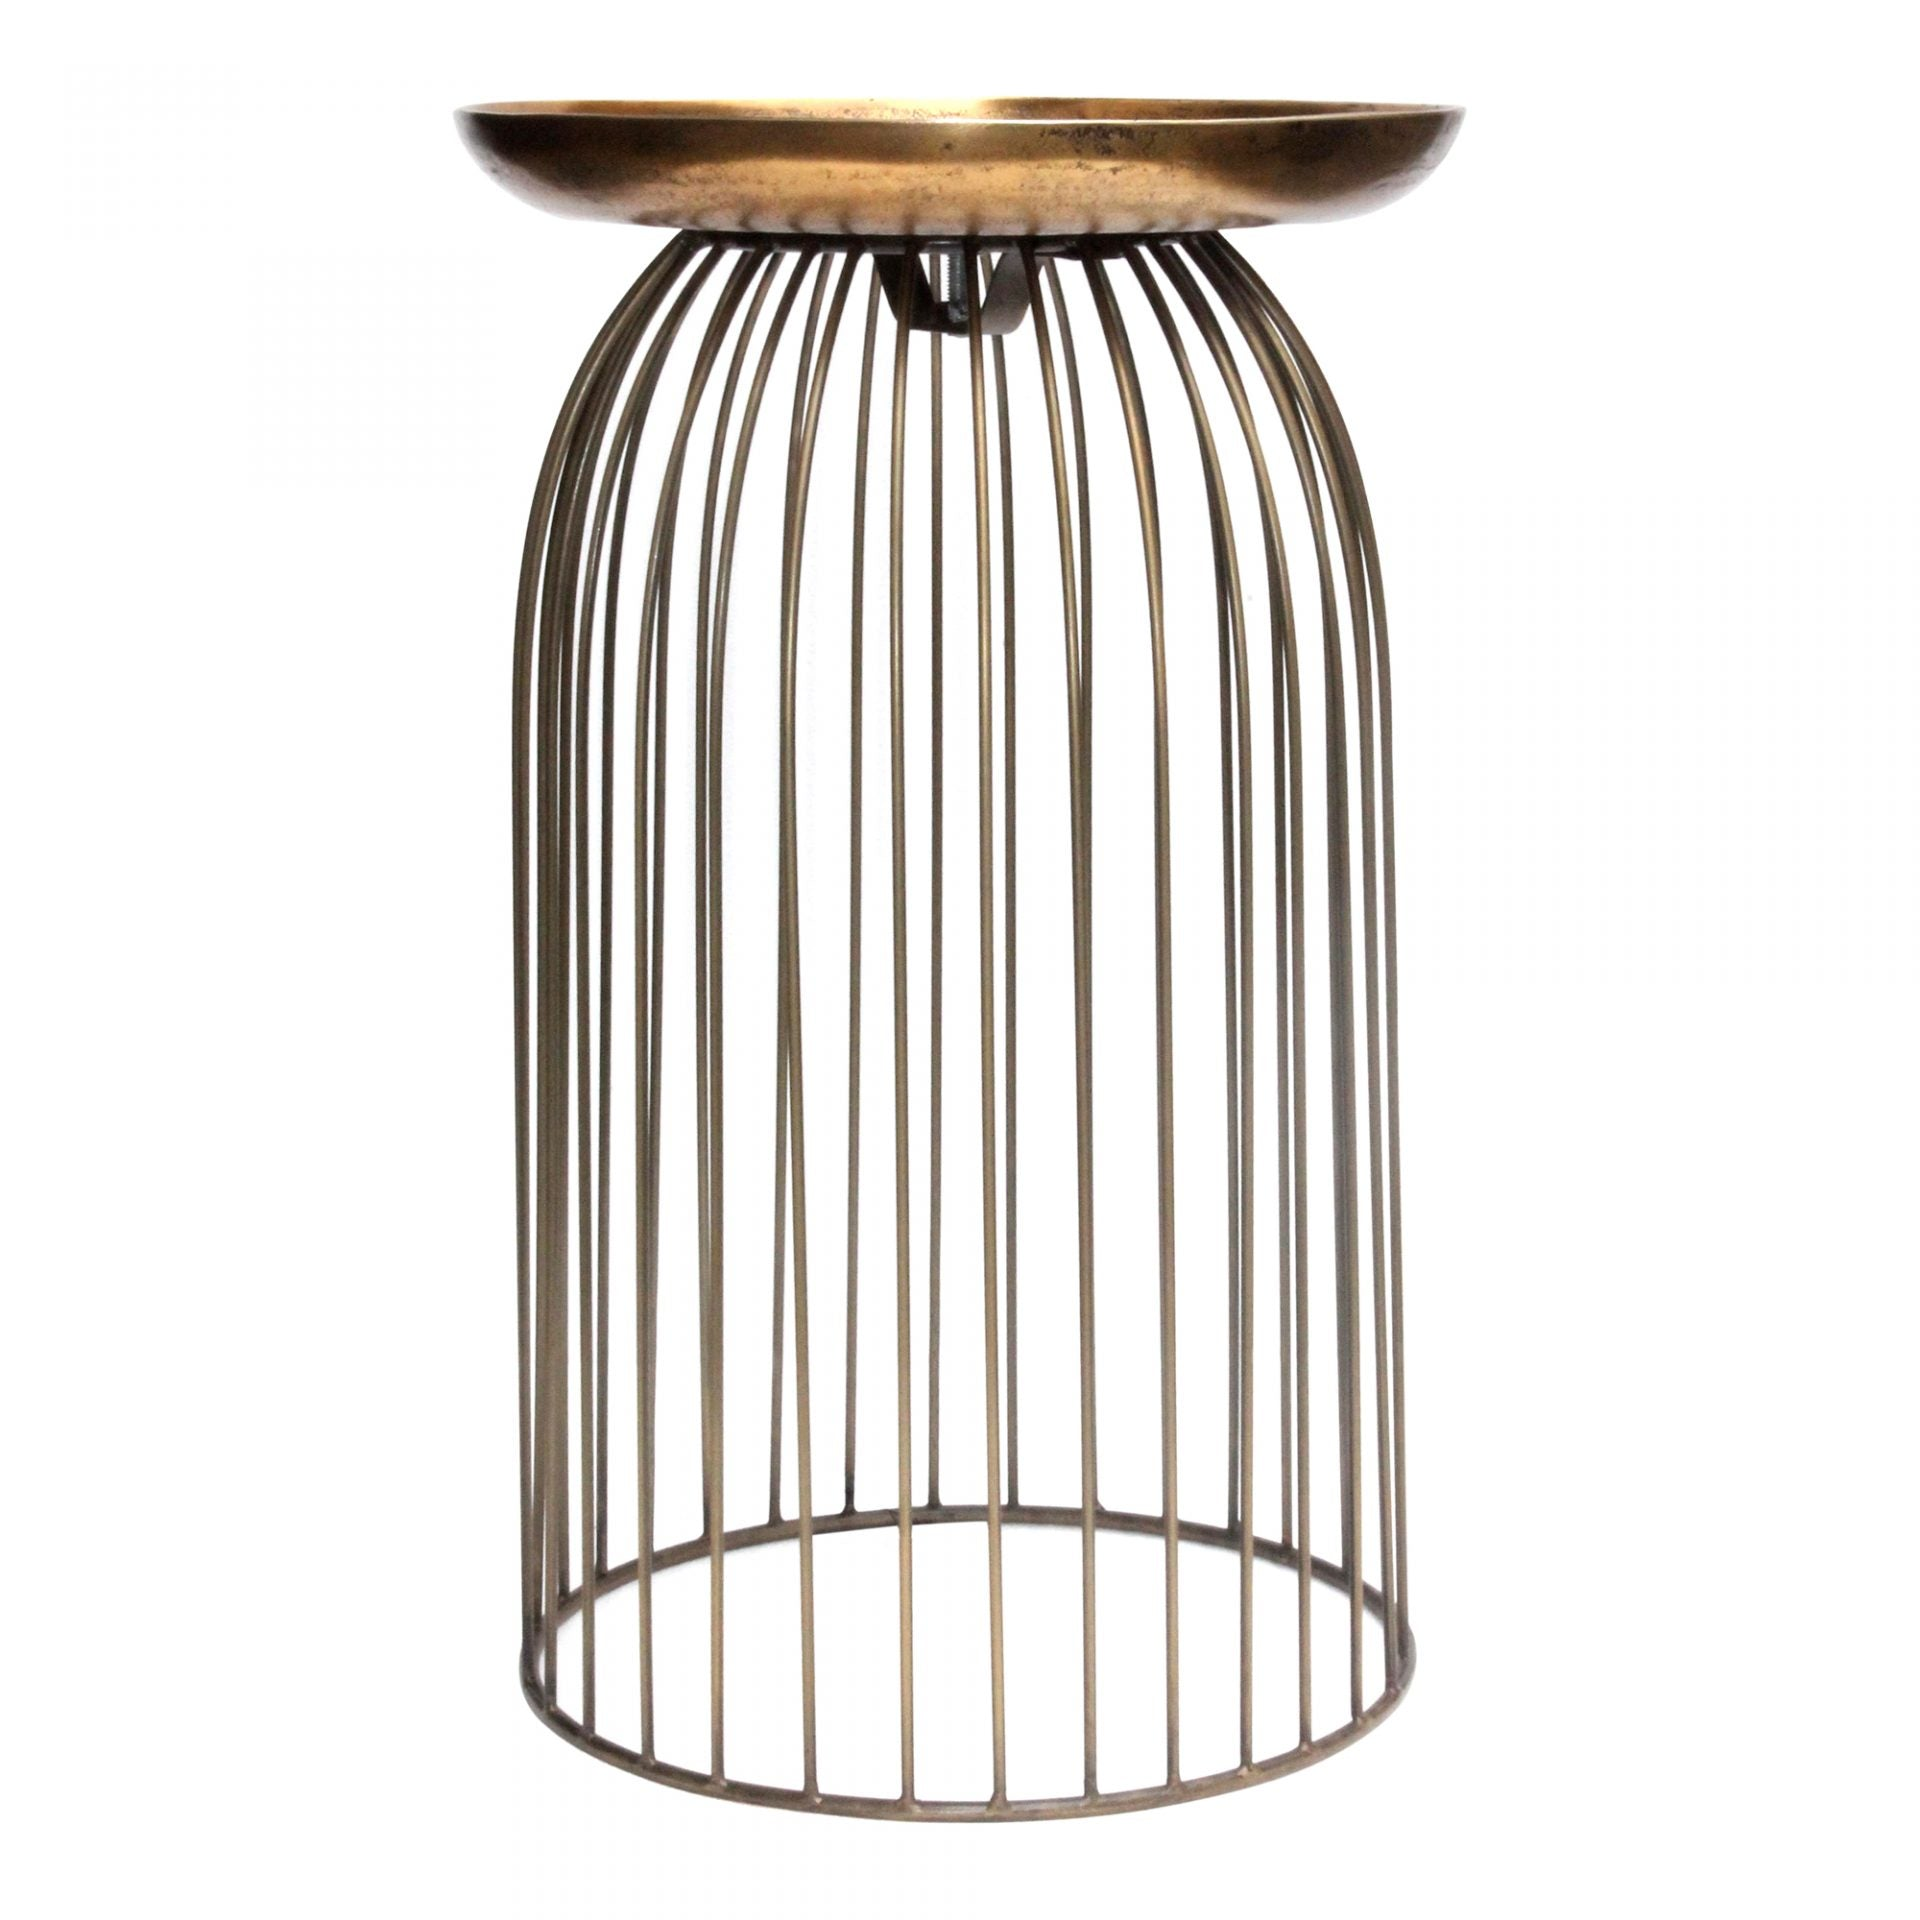 AVIARY ACCENT TABLE - ANTIQUE BRASS